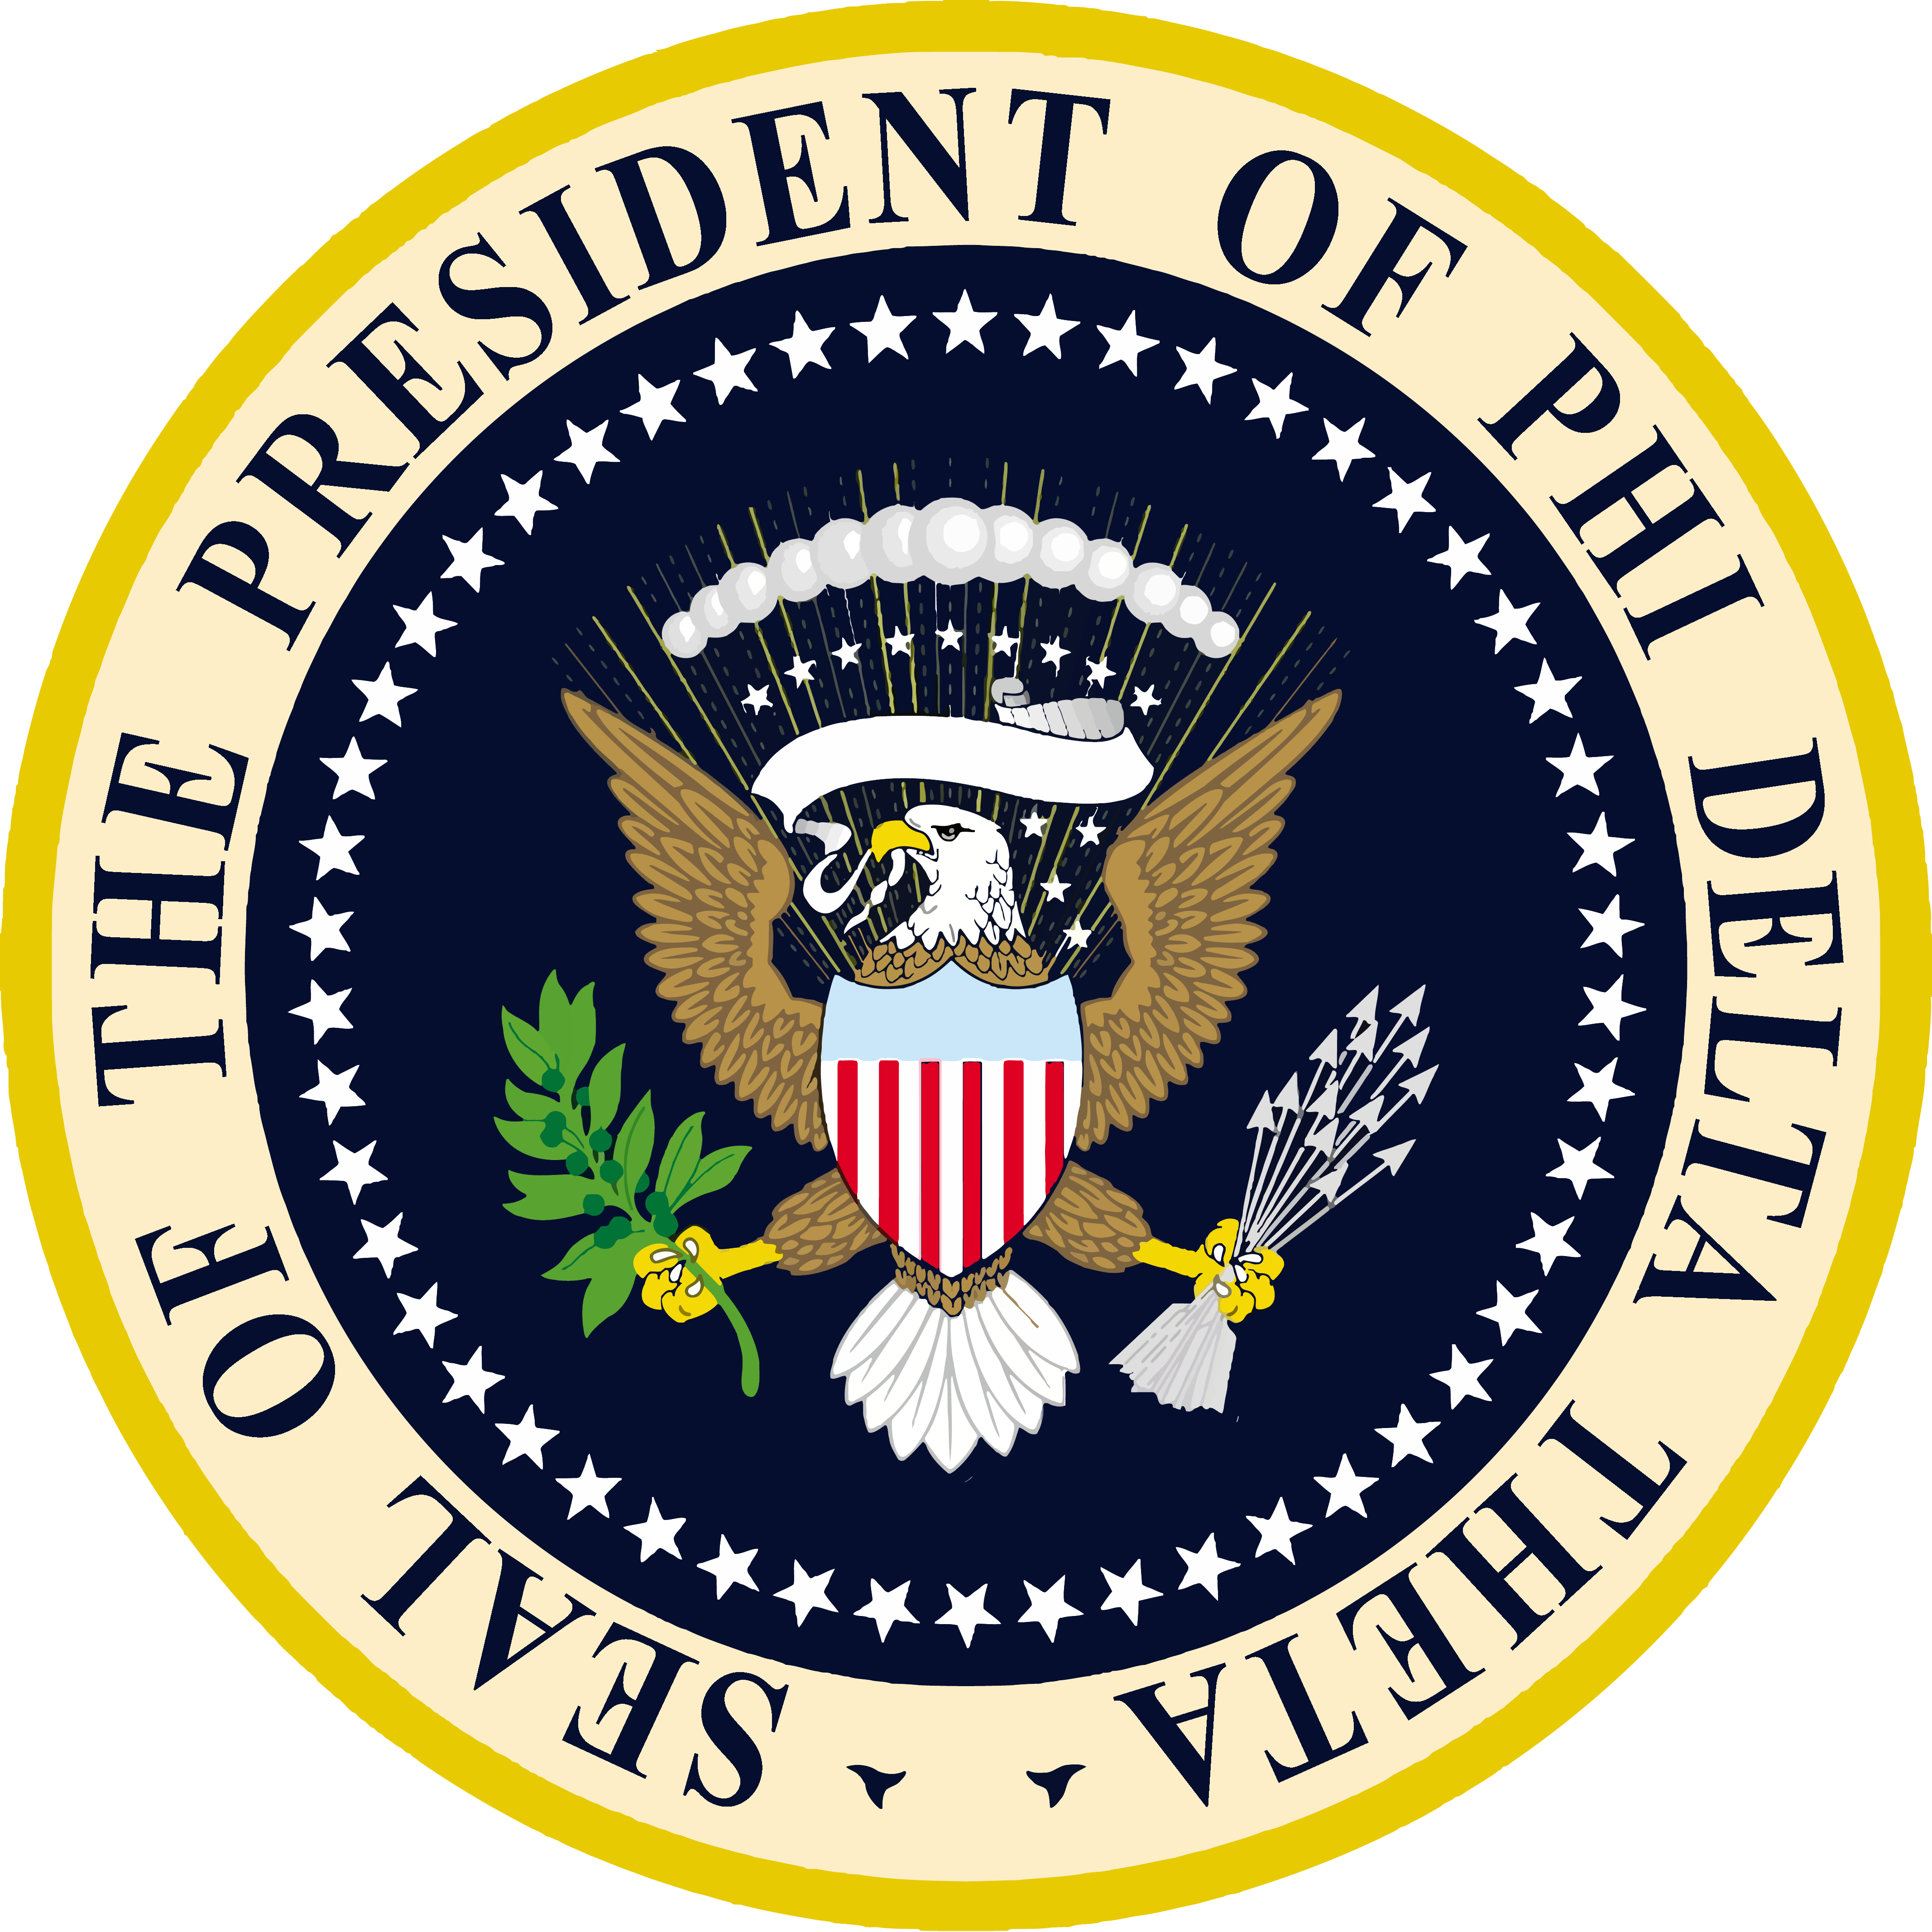 Phi Delta Theta The Presidential Seal Of The United States Of America Parody In 2020 Fraternity Coolers Phi Delta Theta Delta